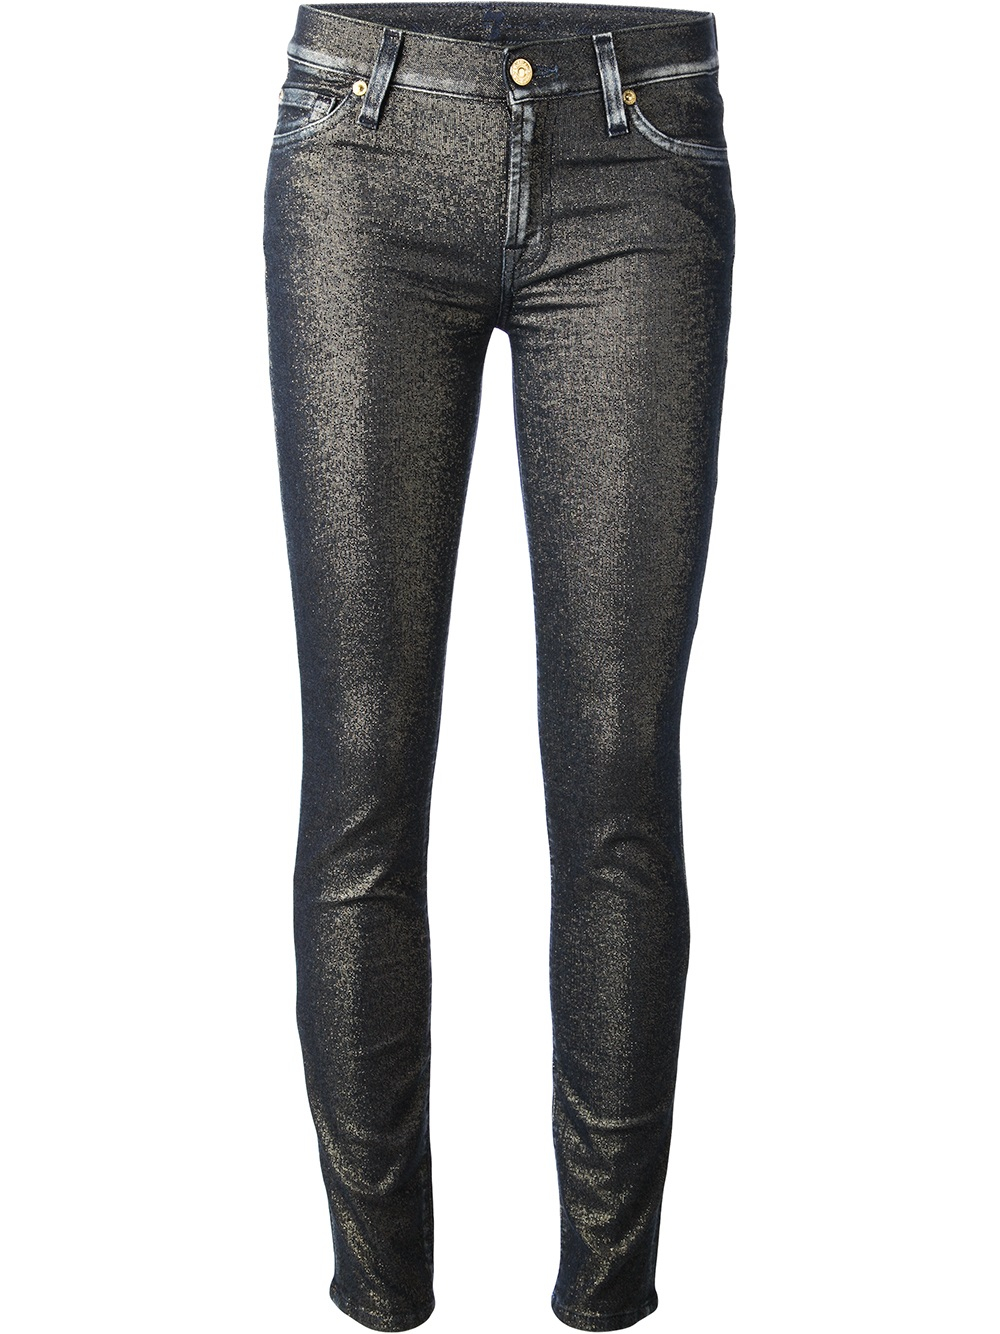 7 For All Mankind Women's Petite Size The Tailorless Dojo ...